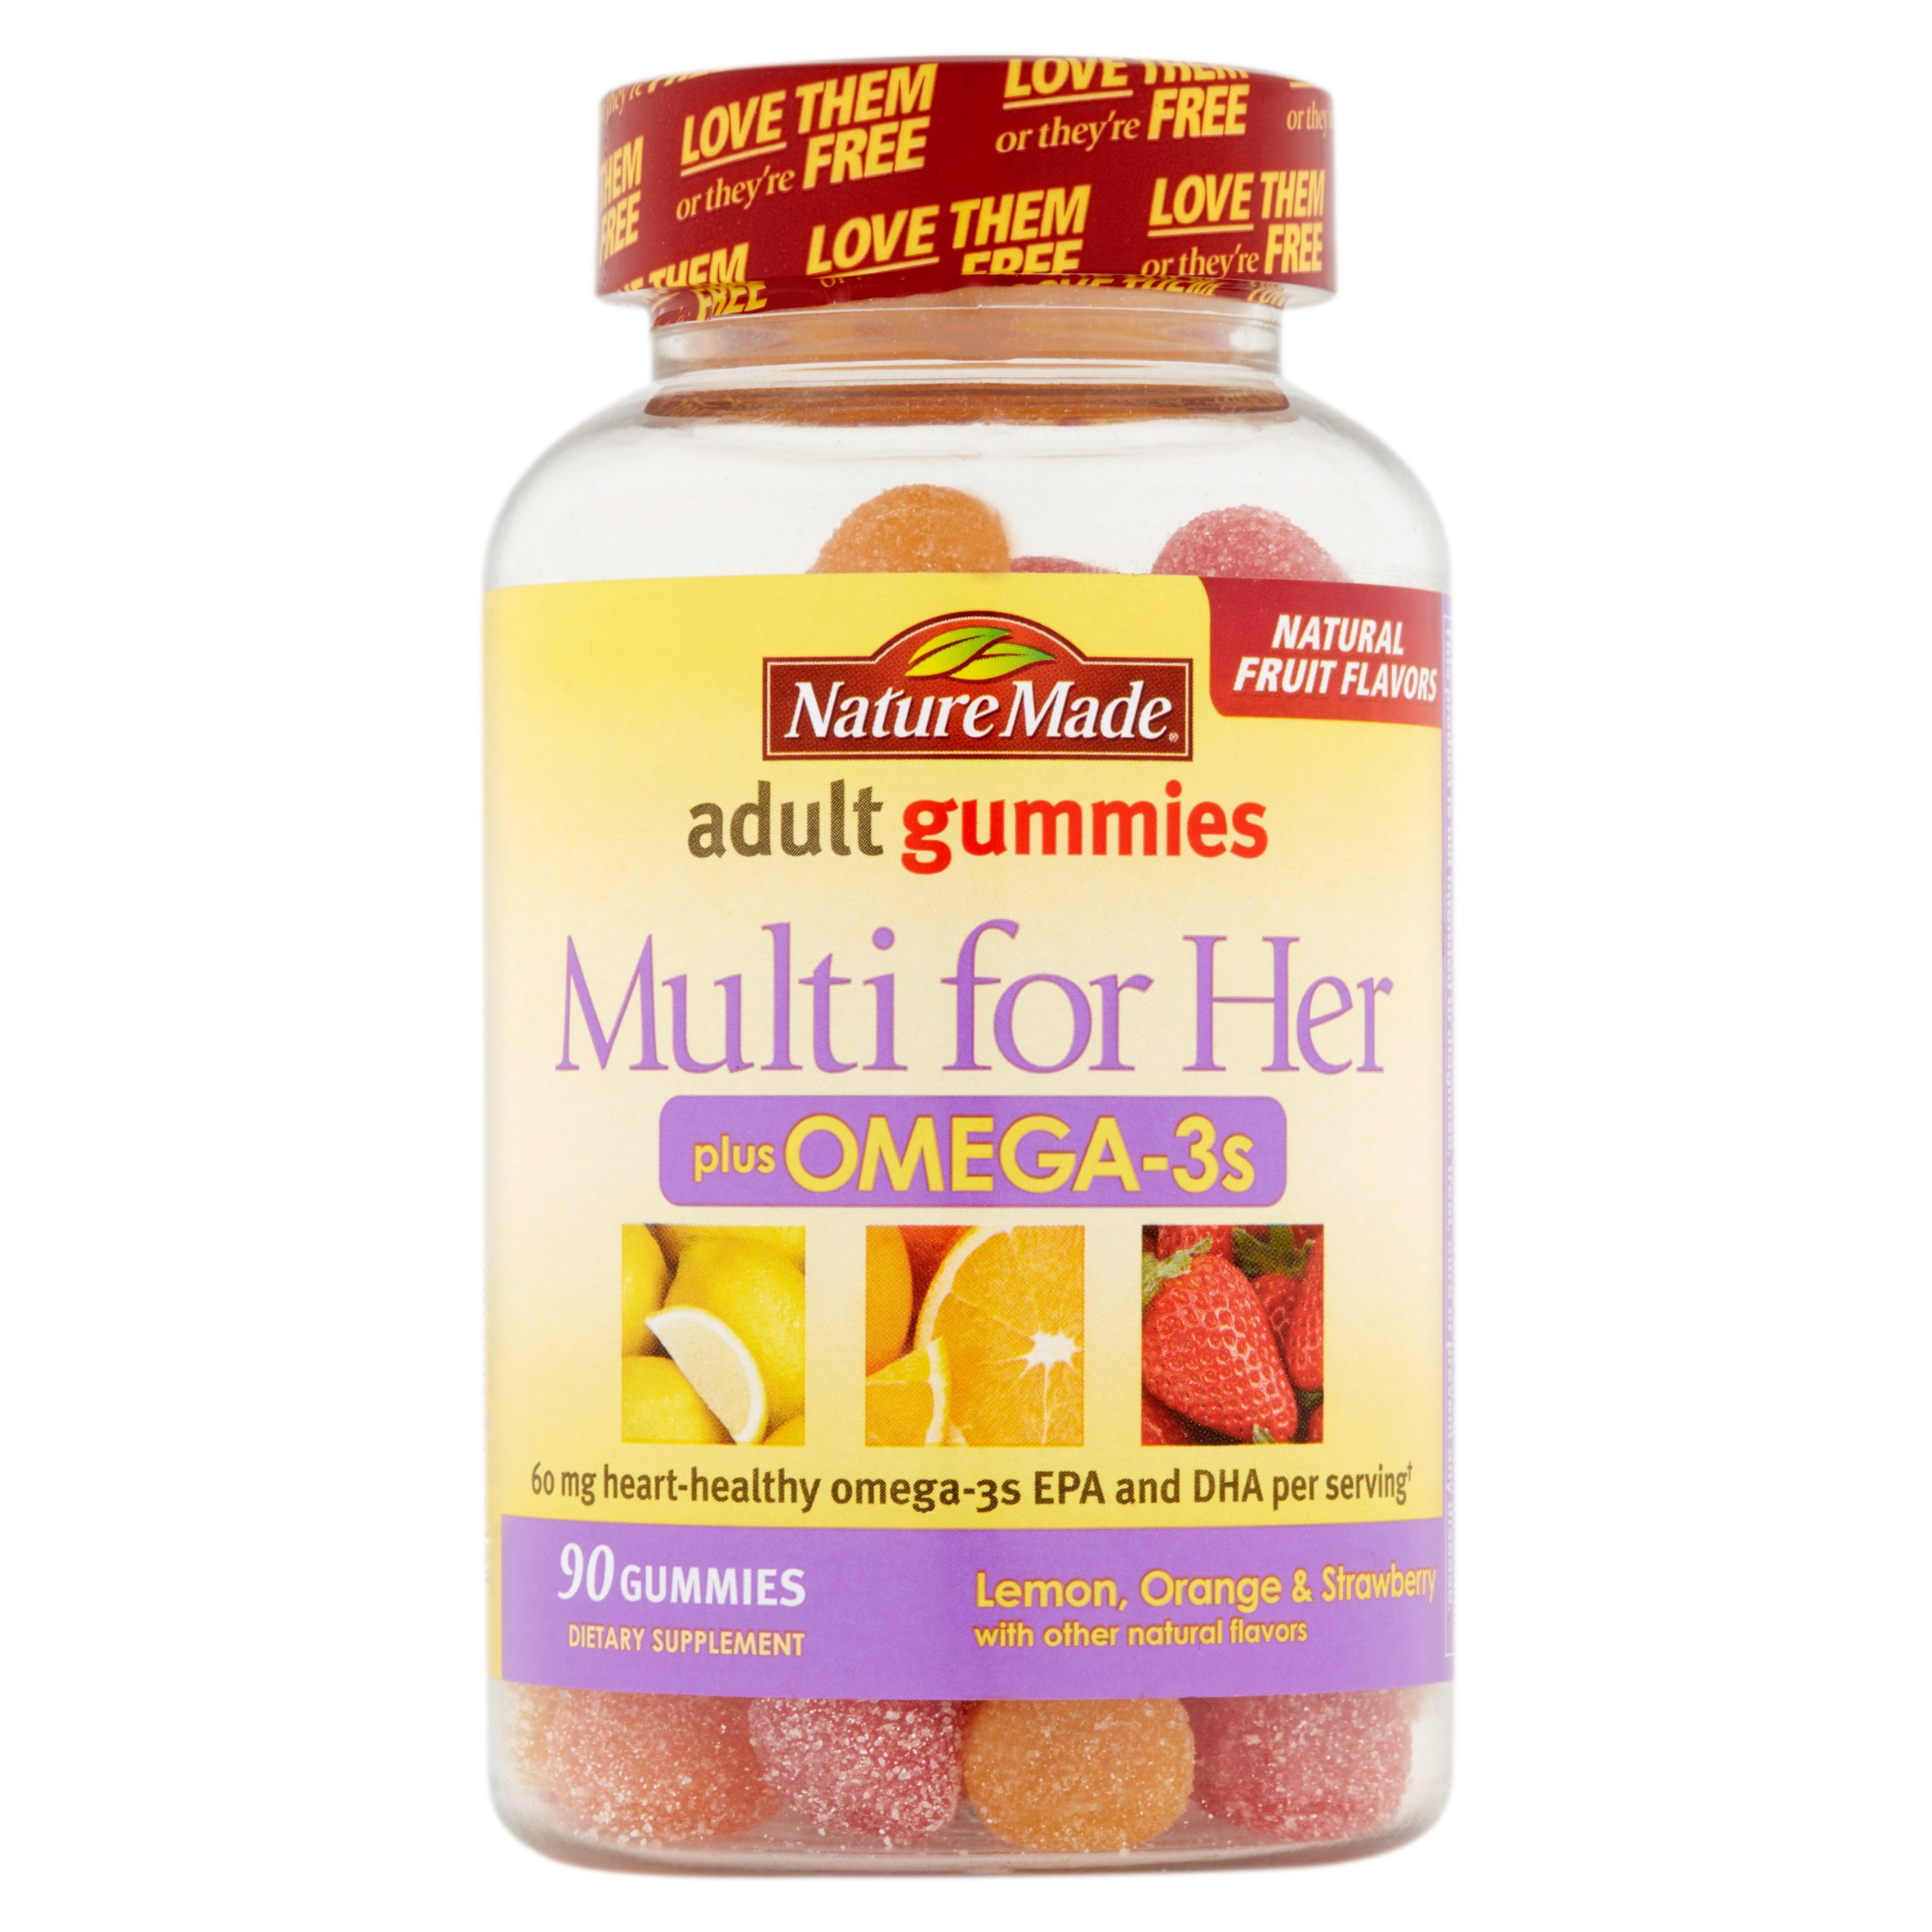 Nature Made Multi for Her Plus Omega-3s Lemon, Orange & Strawberry Adult Gummies, 90 count